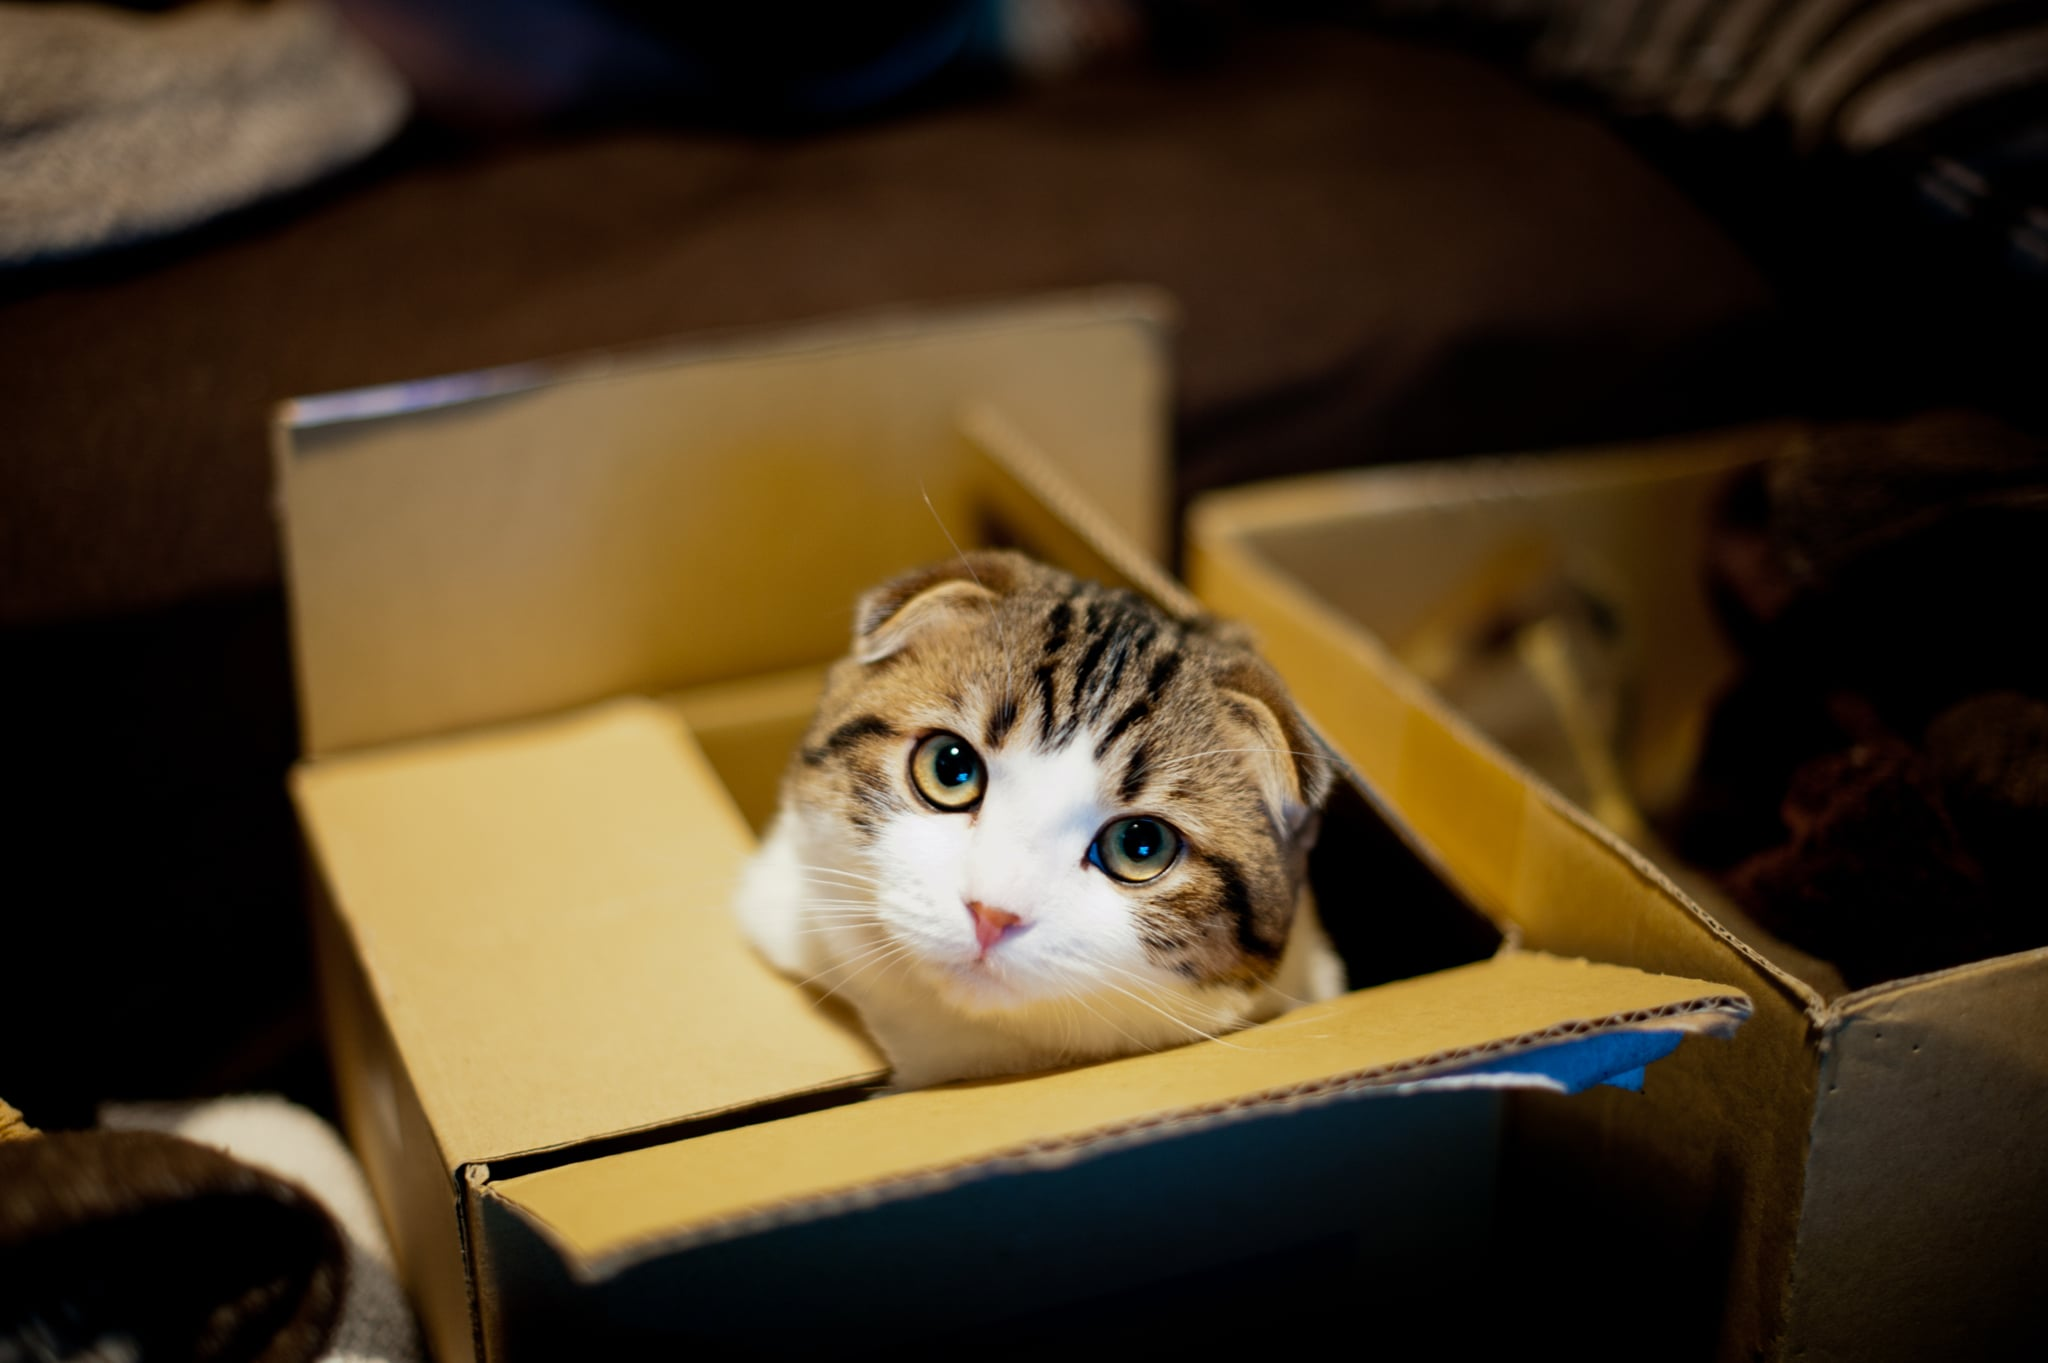 Cat in box and looking up.